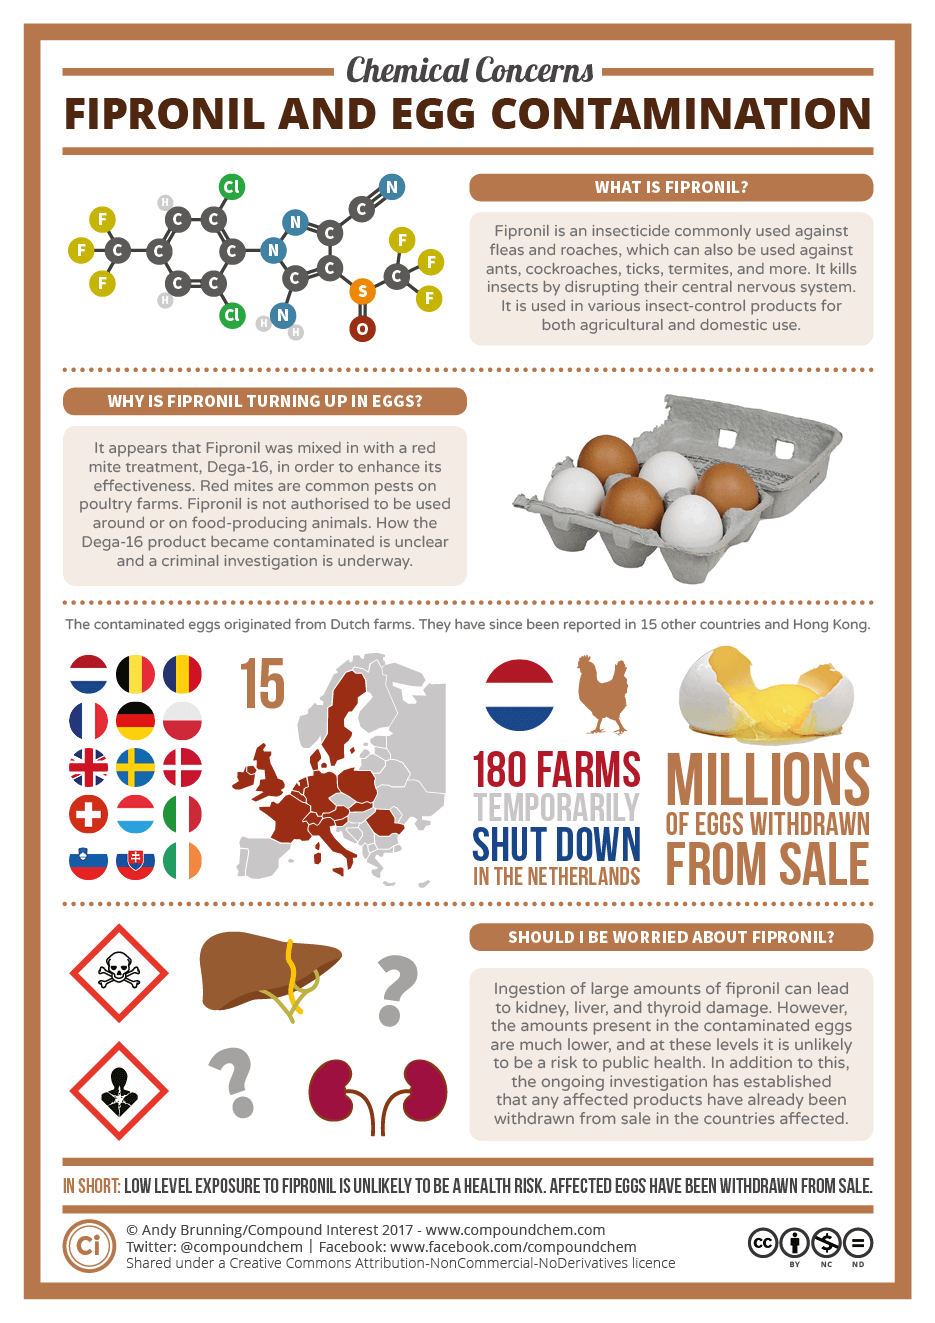 Chemical Concerns – Fipronil and the contaminated egg scandal 11-08